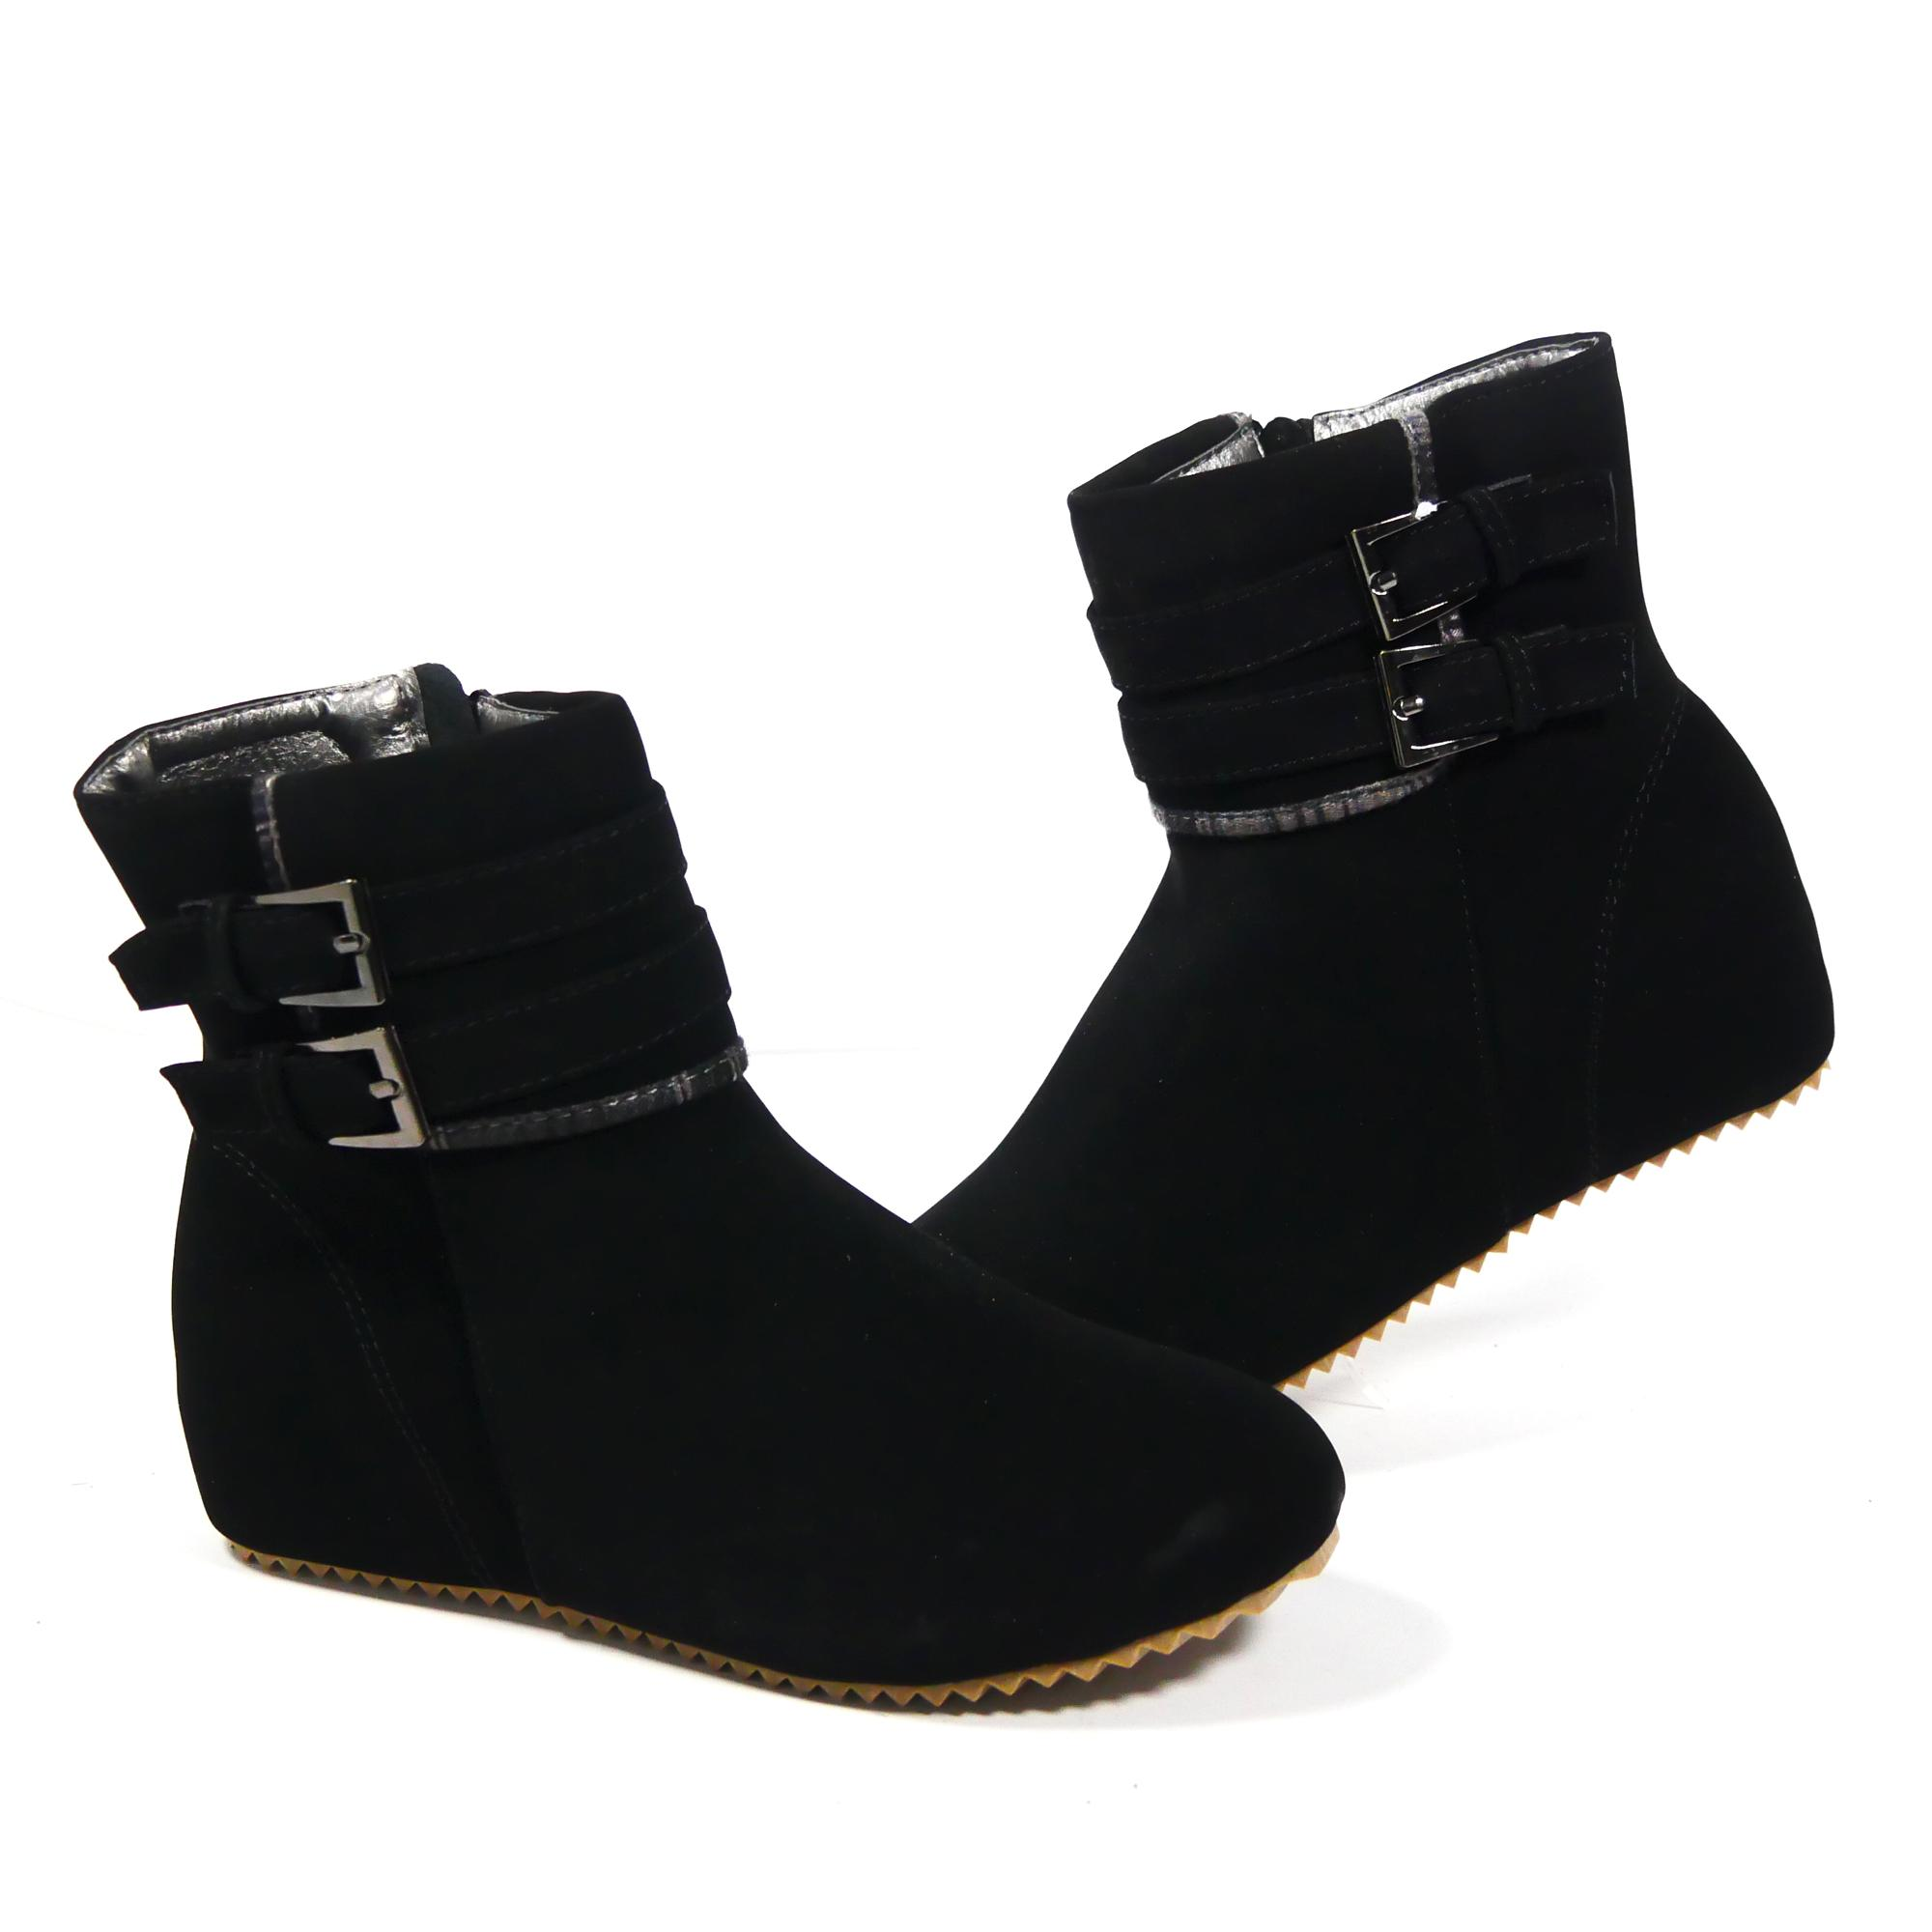 Girls Boots for sale - Boots for Girls online brands ee7b4fea0909